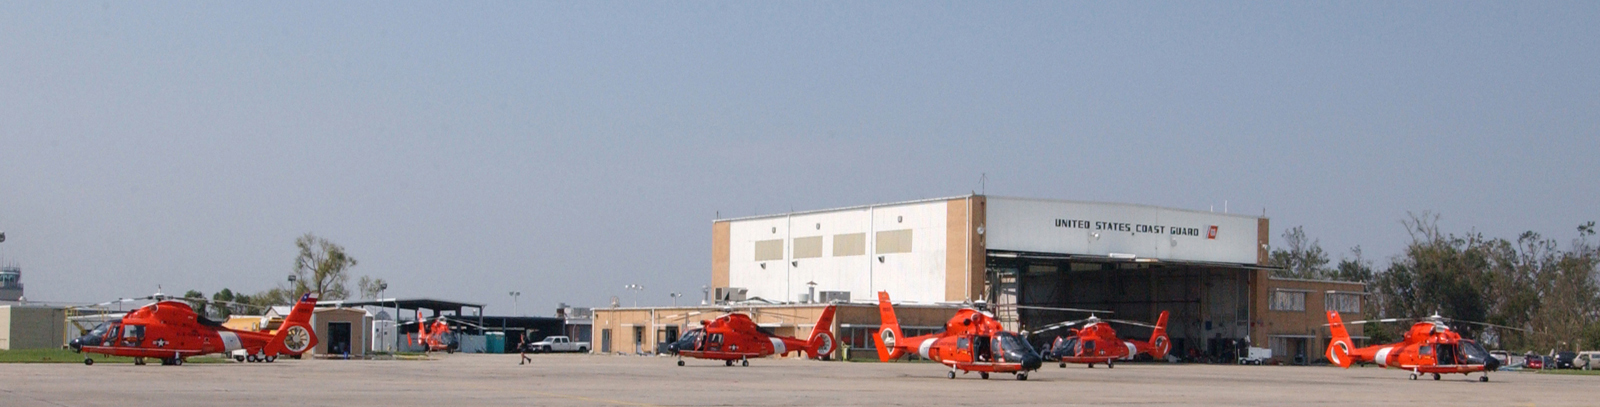 air station new orleans louisiana original photo caption coast guard rescue helicopters line